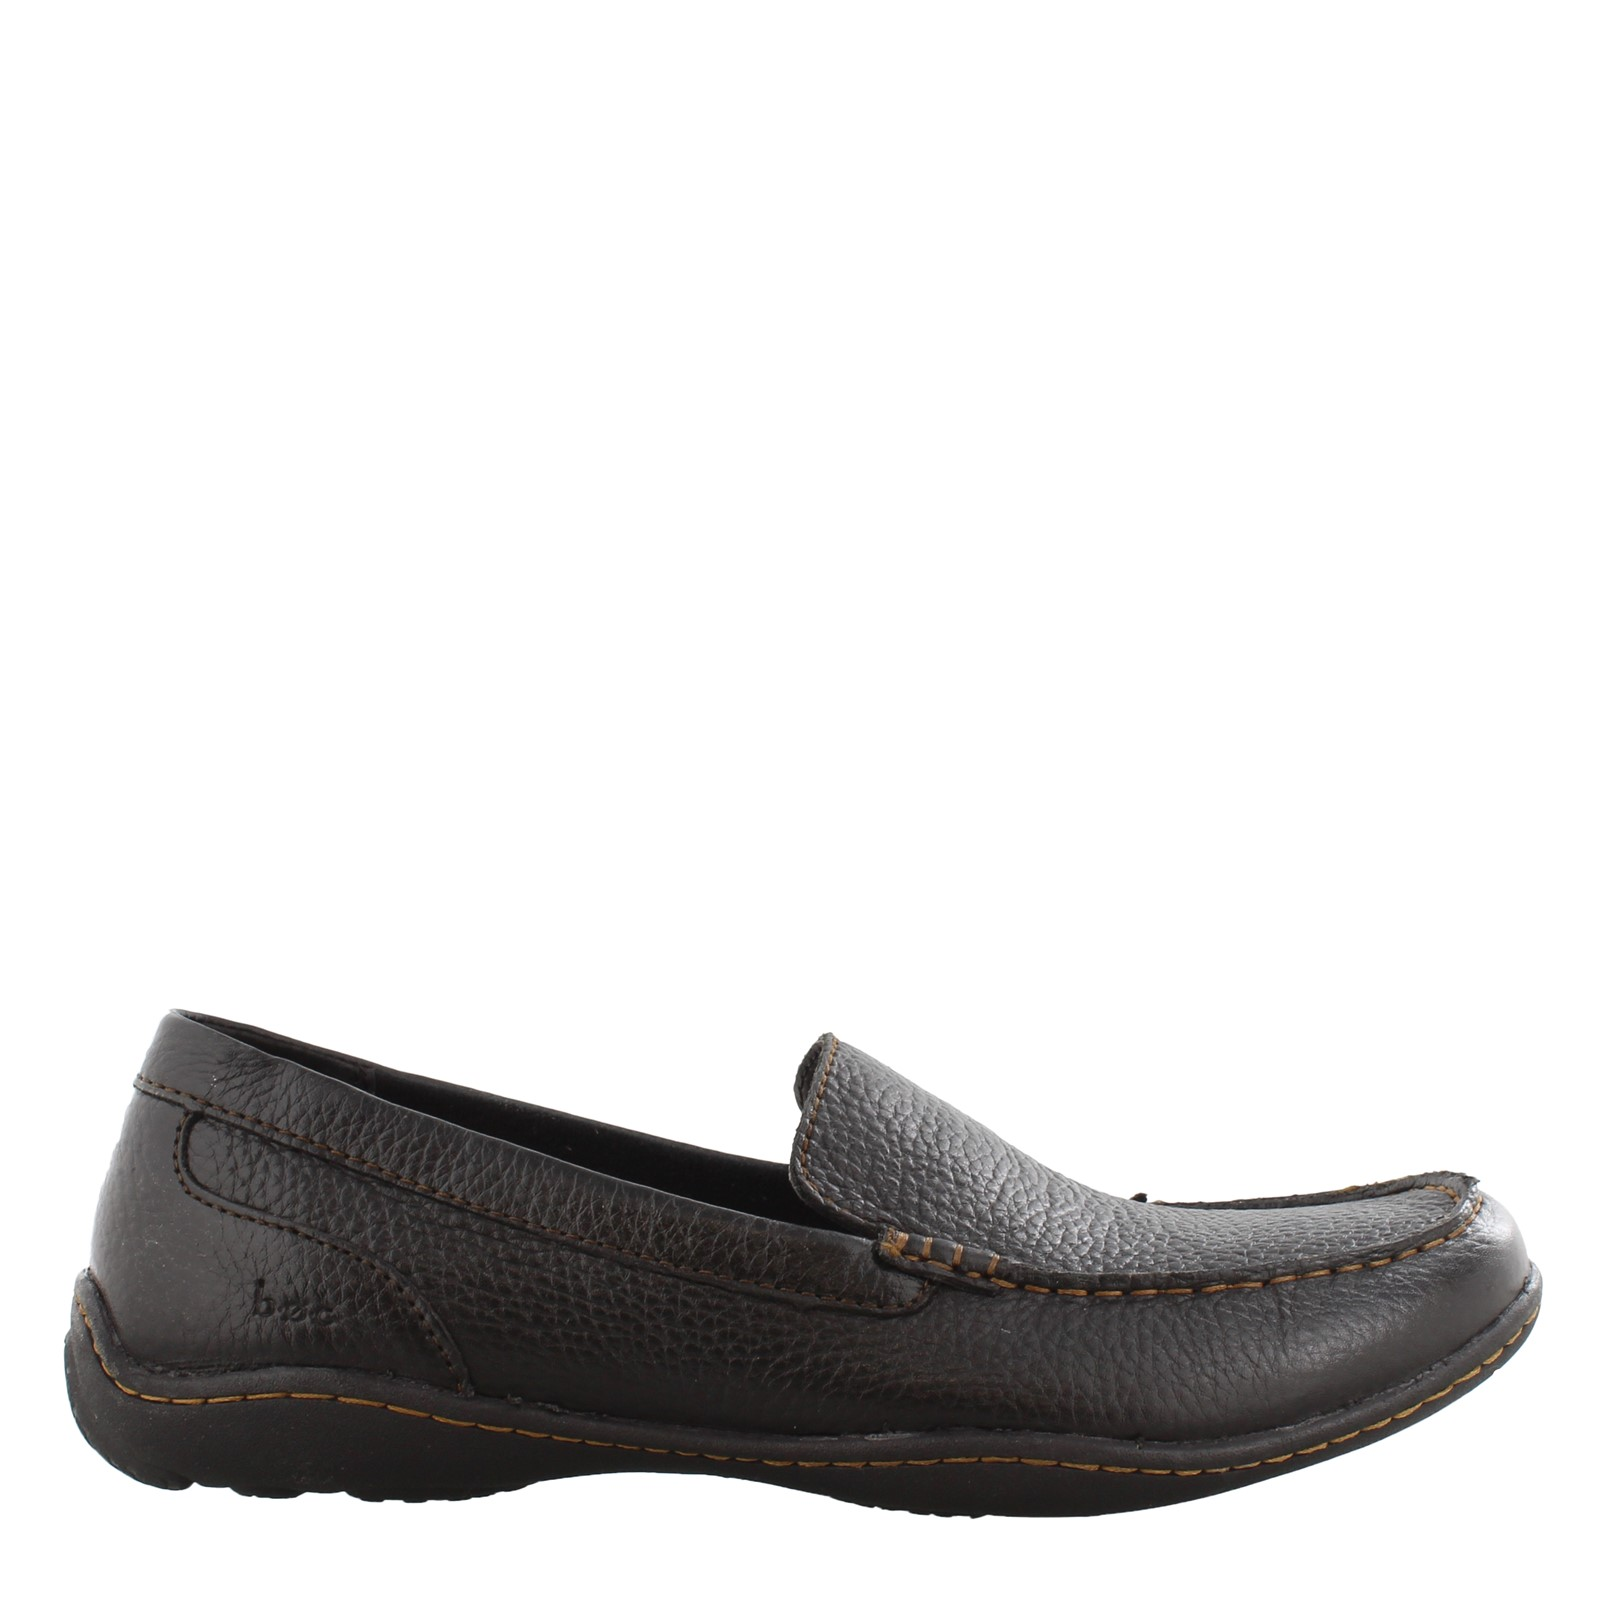 Men's B.O.C, Merton Loafer